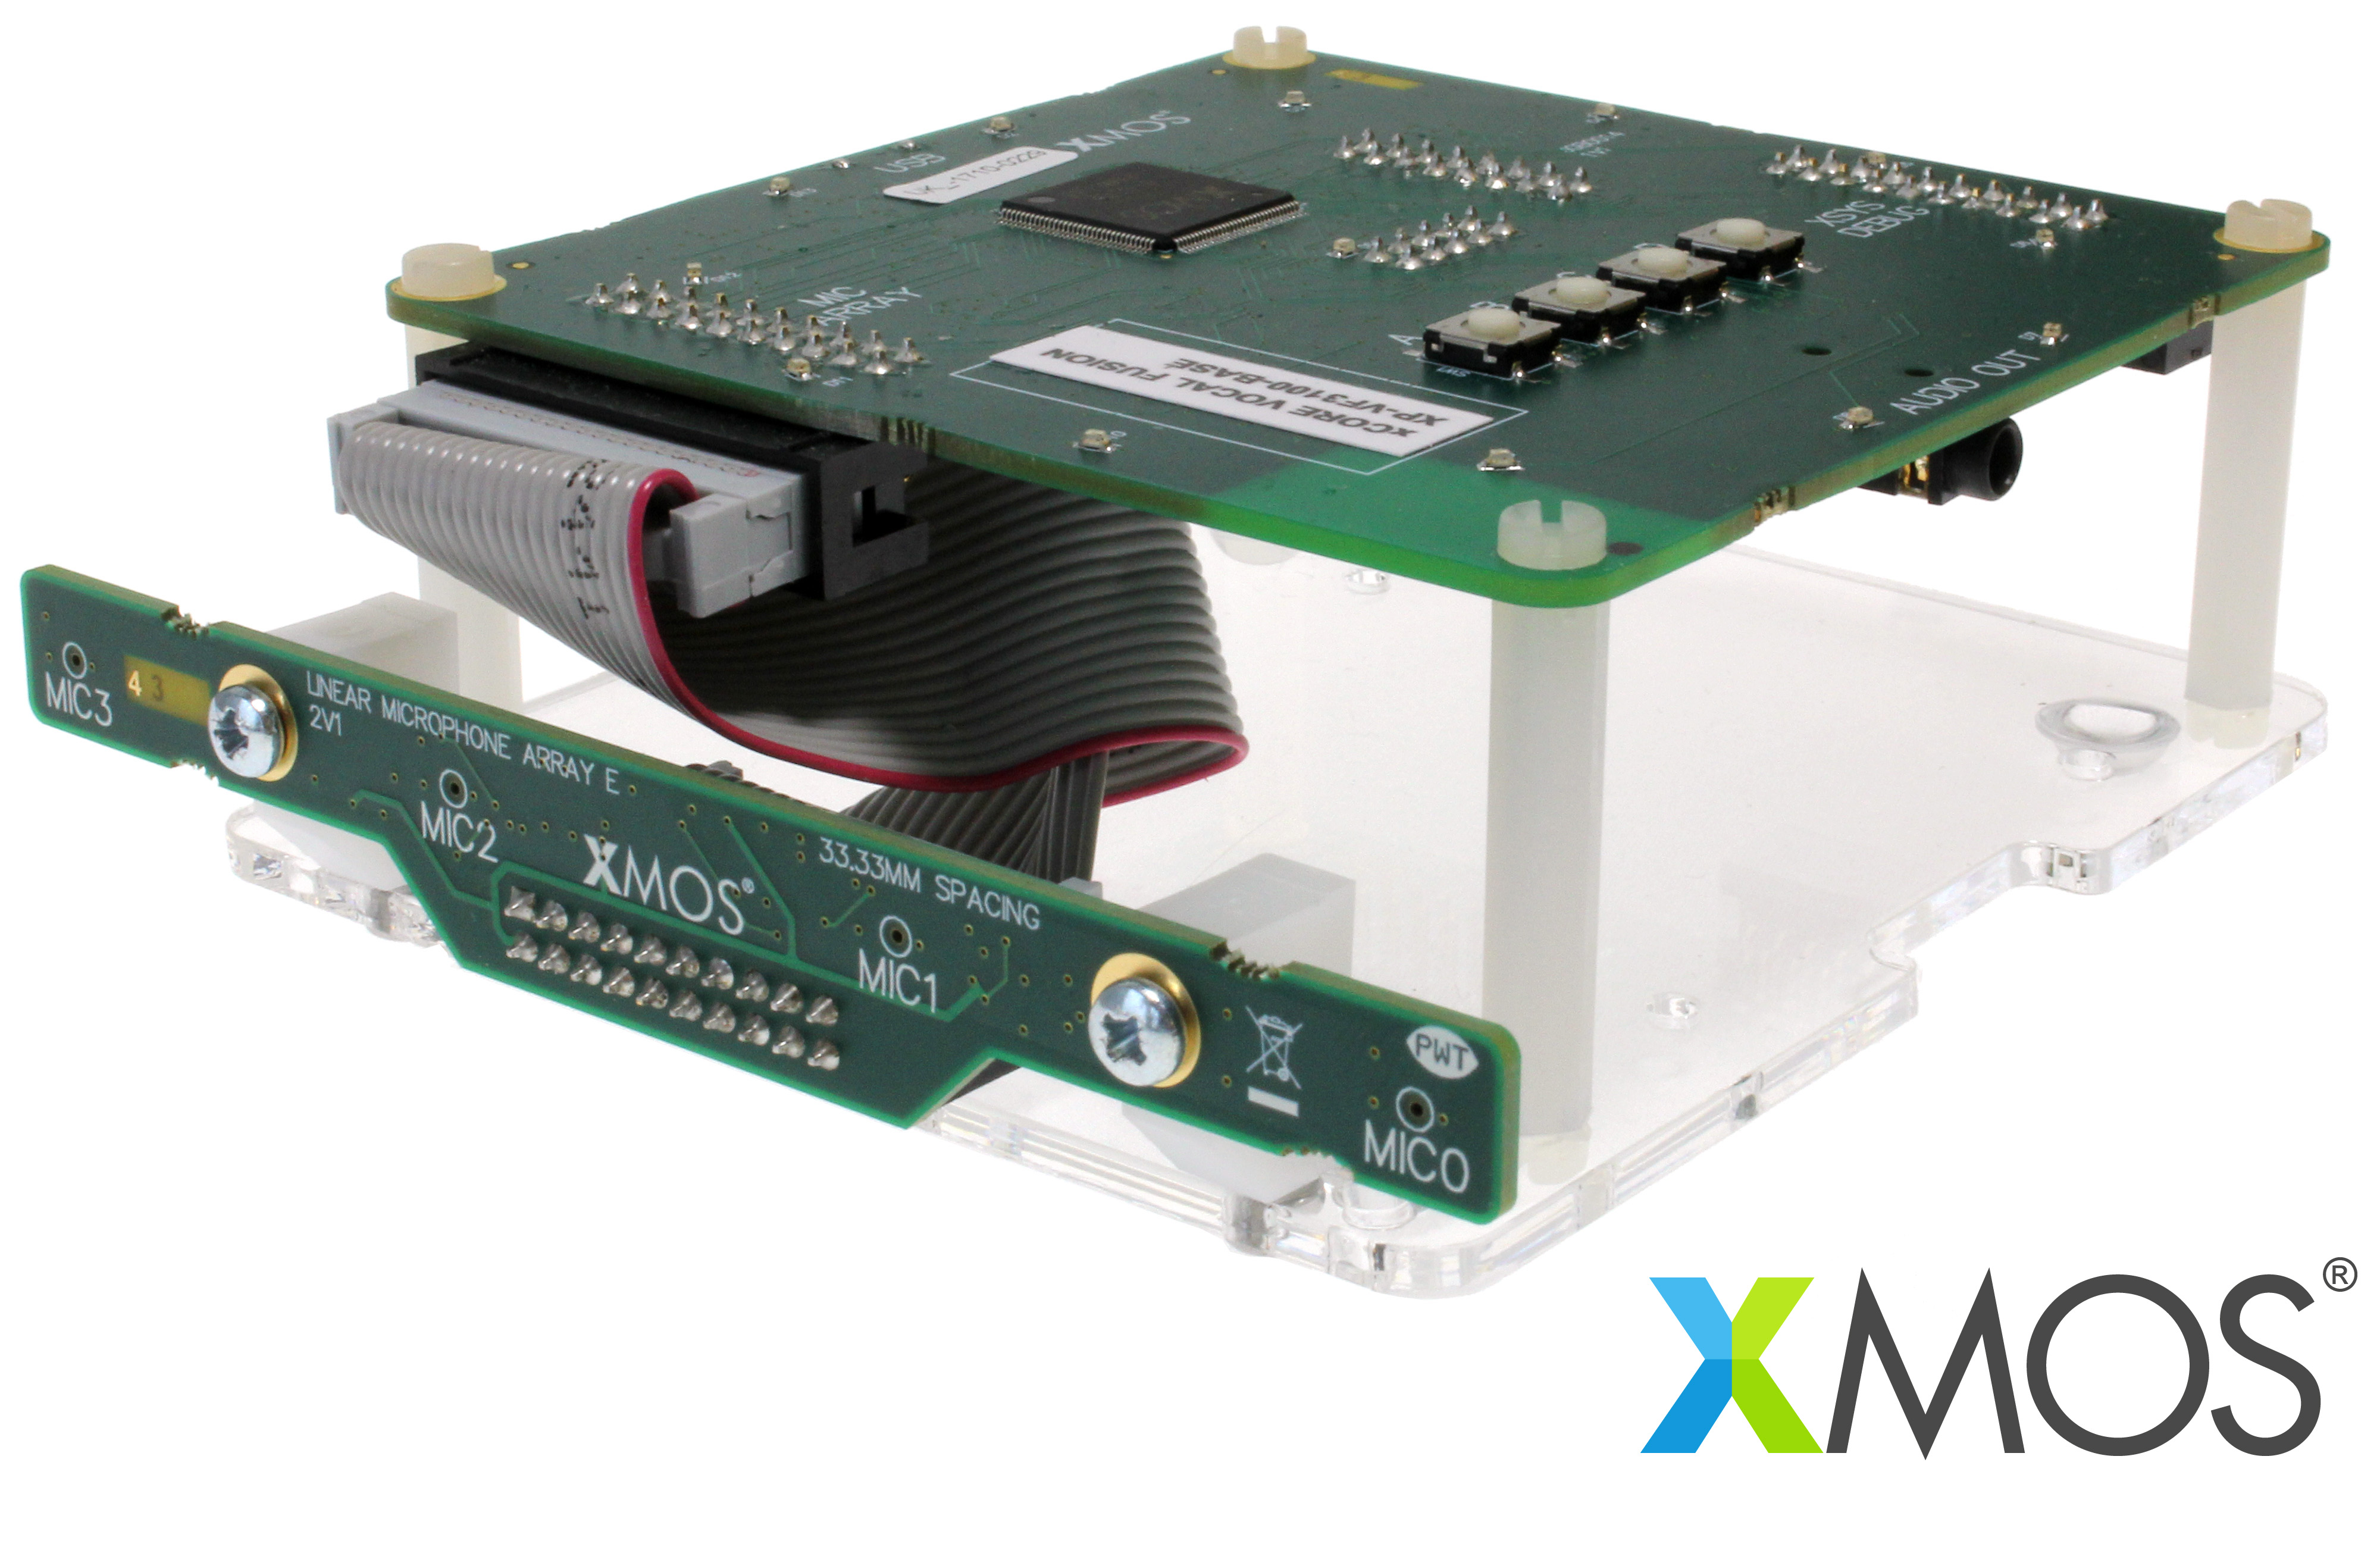 Xmos launches development kit for far field voice capture Smart home architecture based on event driven dpws